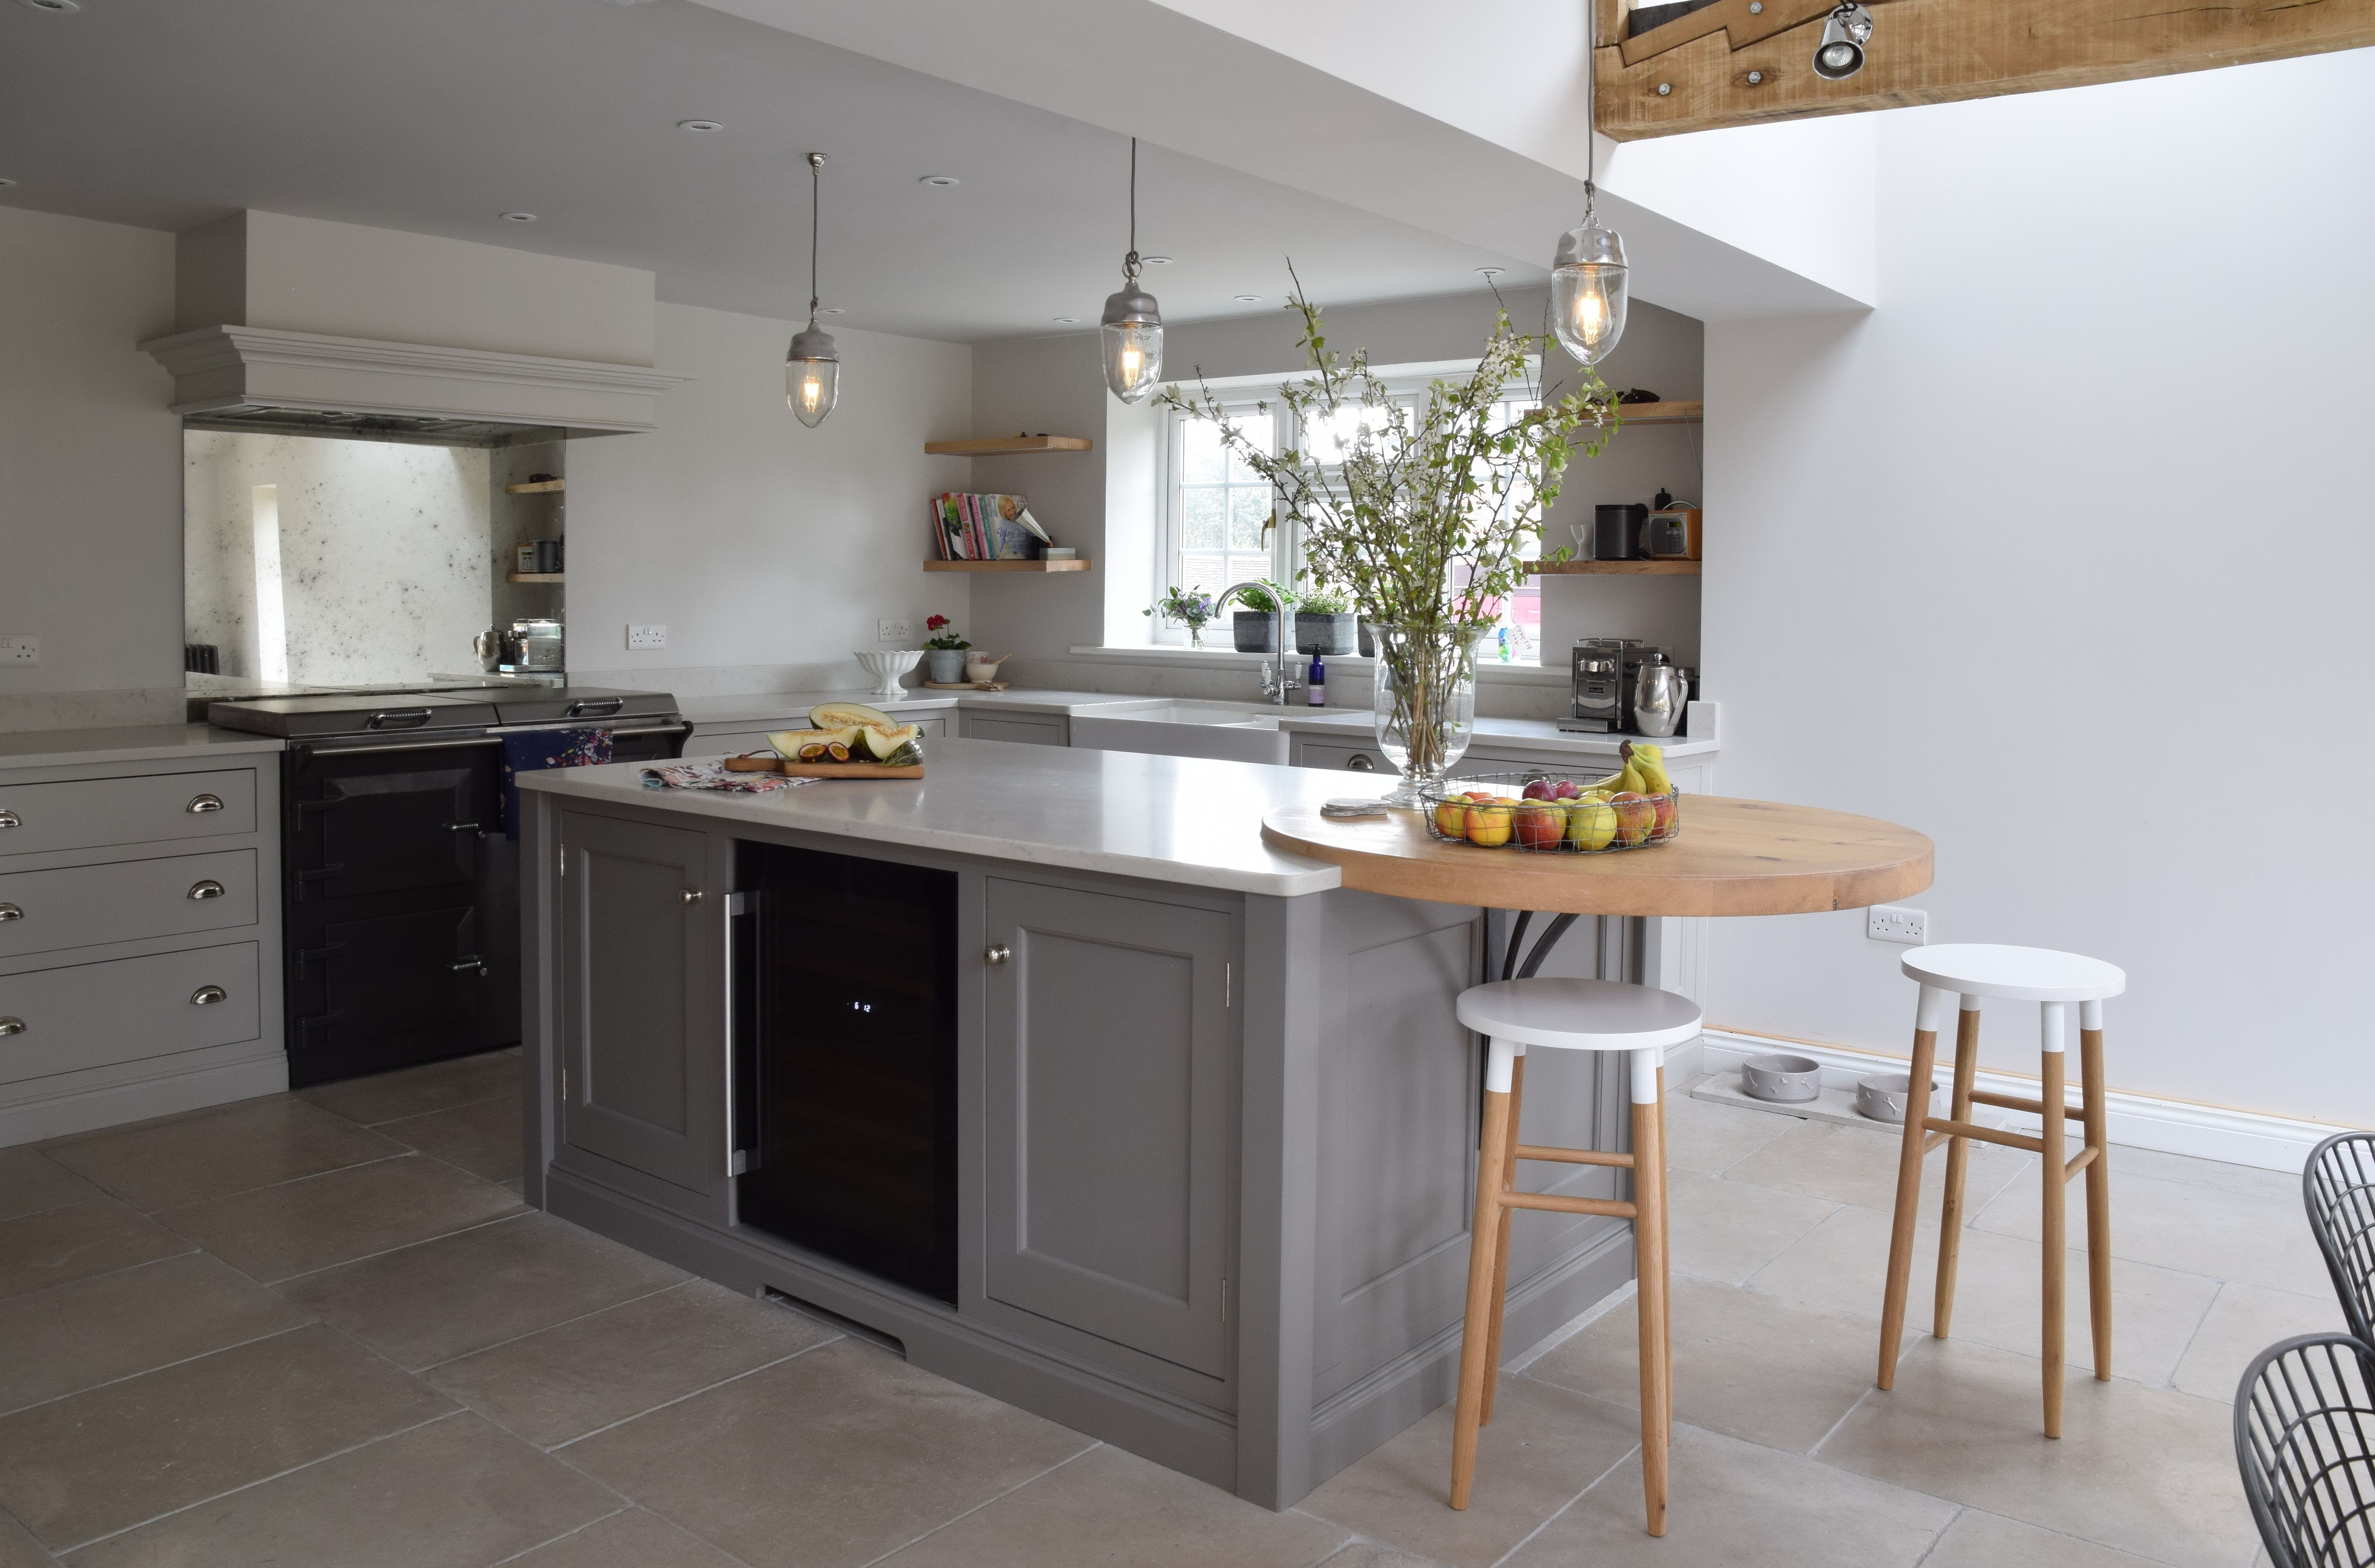 Best Guild Anderson Kitchen In Farrow And Ball Purbeck Stone 400 x 300